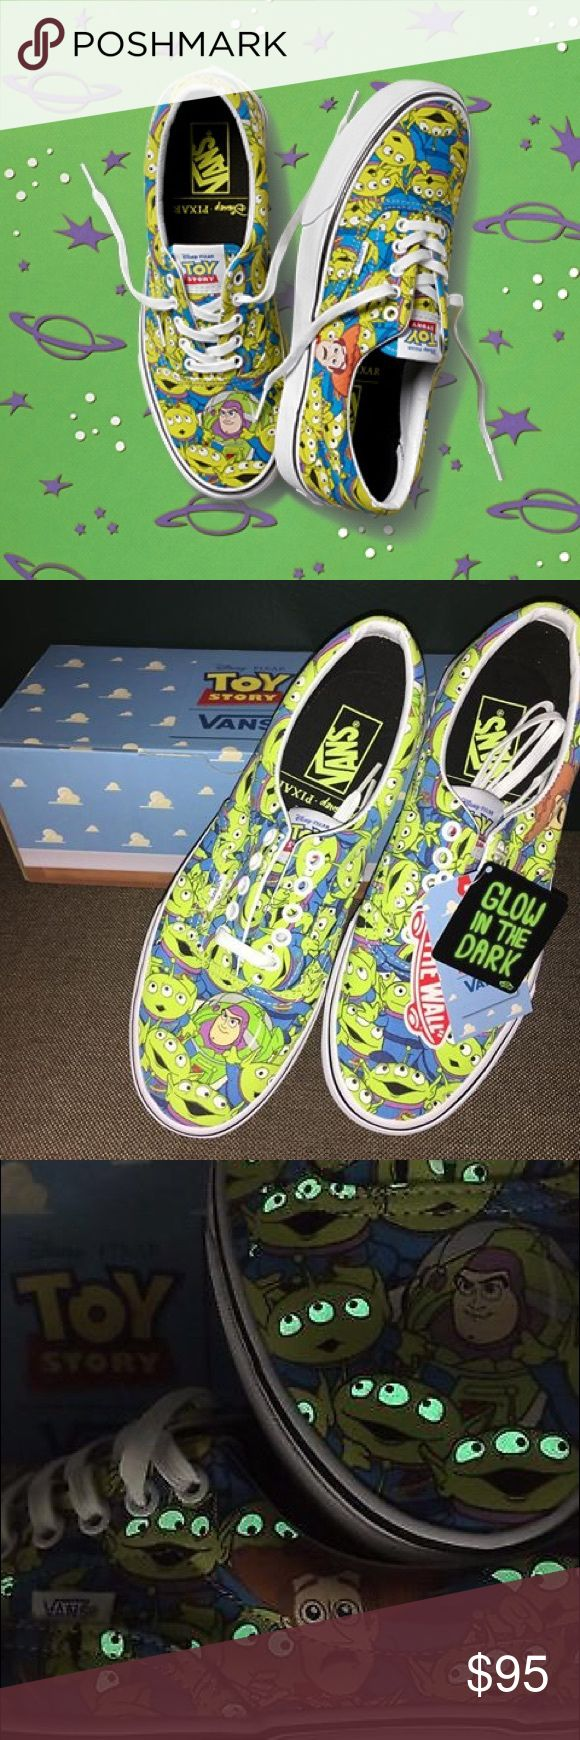 2016 Toy Story Vans Disney Brand new in box 2016 Limited Edition Vans X Toy Story ERA Aliens.  Aliens glow in the dark! Women's size 10 or Men's size 8.5 This collection is sold out and very rare. They are currently selling on eBay for $200 Vans Shoes Sneakers